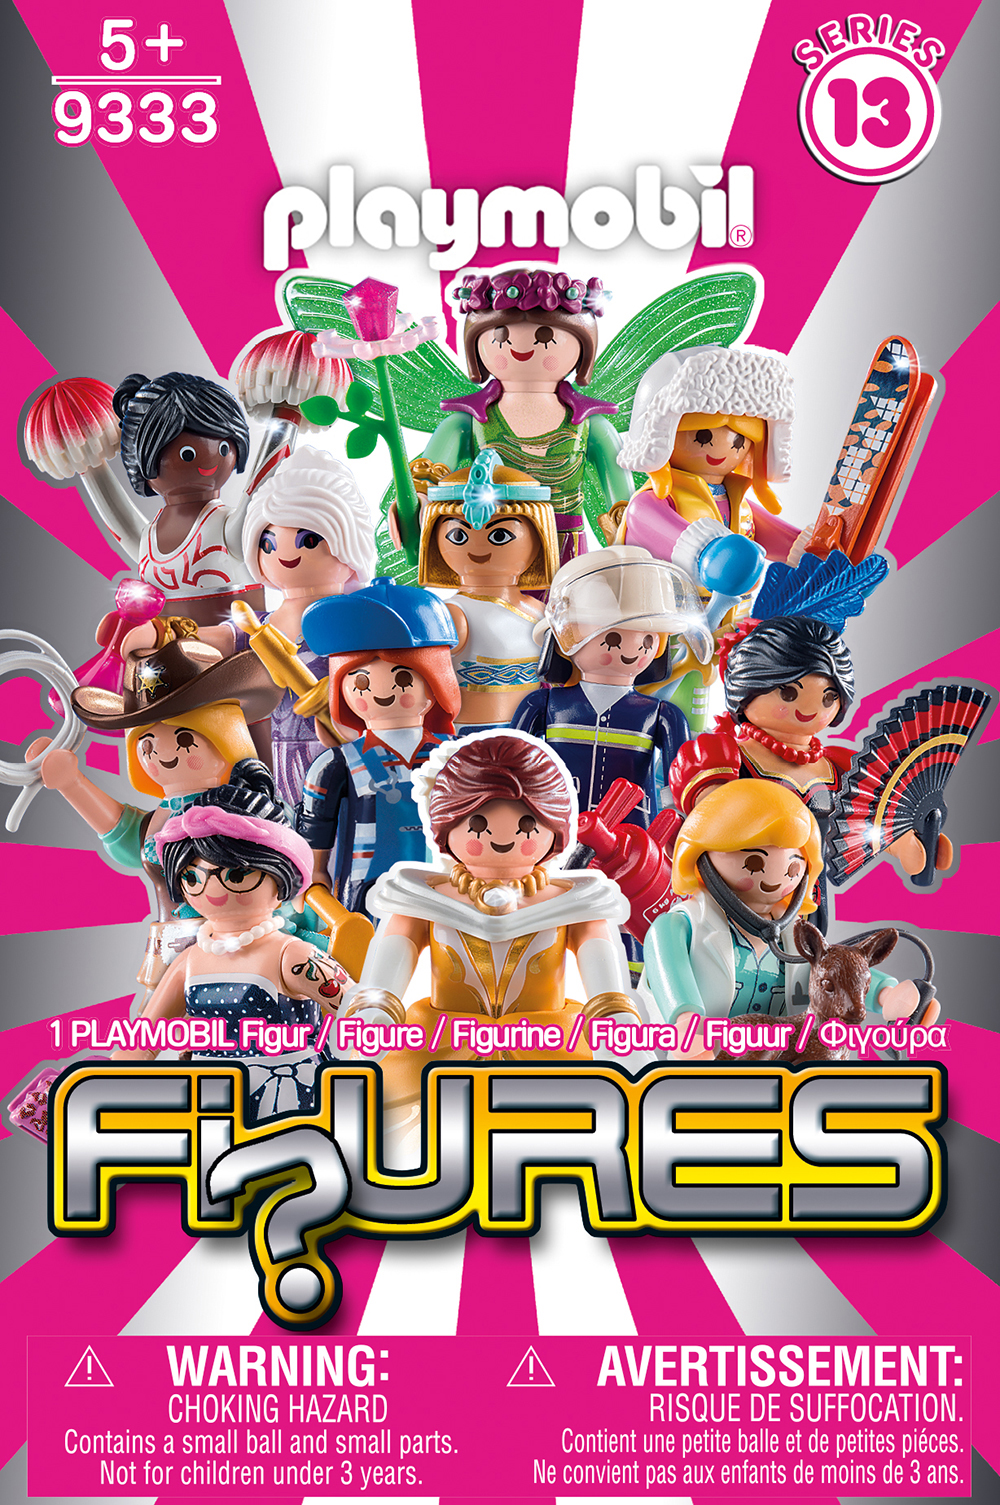 Playmobil 9333 Figures Serie 13 Girls